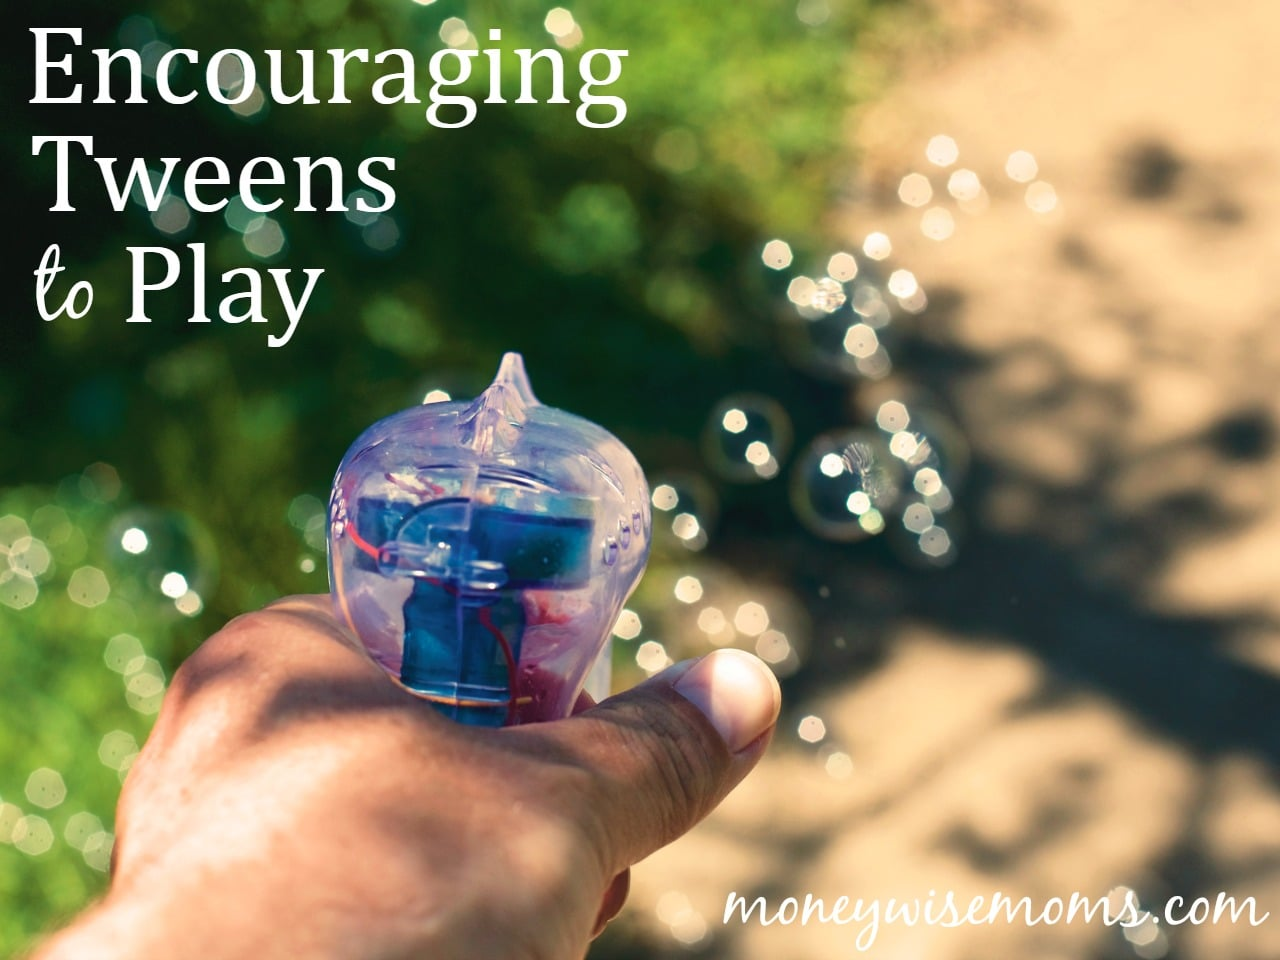 Encouraging Tweens to Play - why it's so important